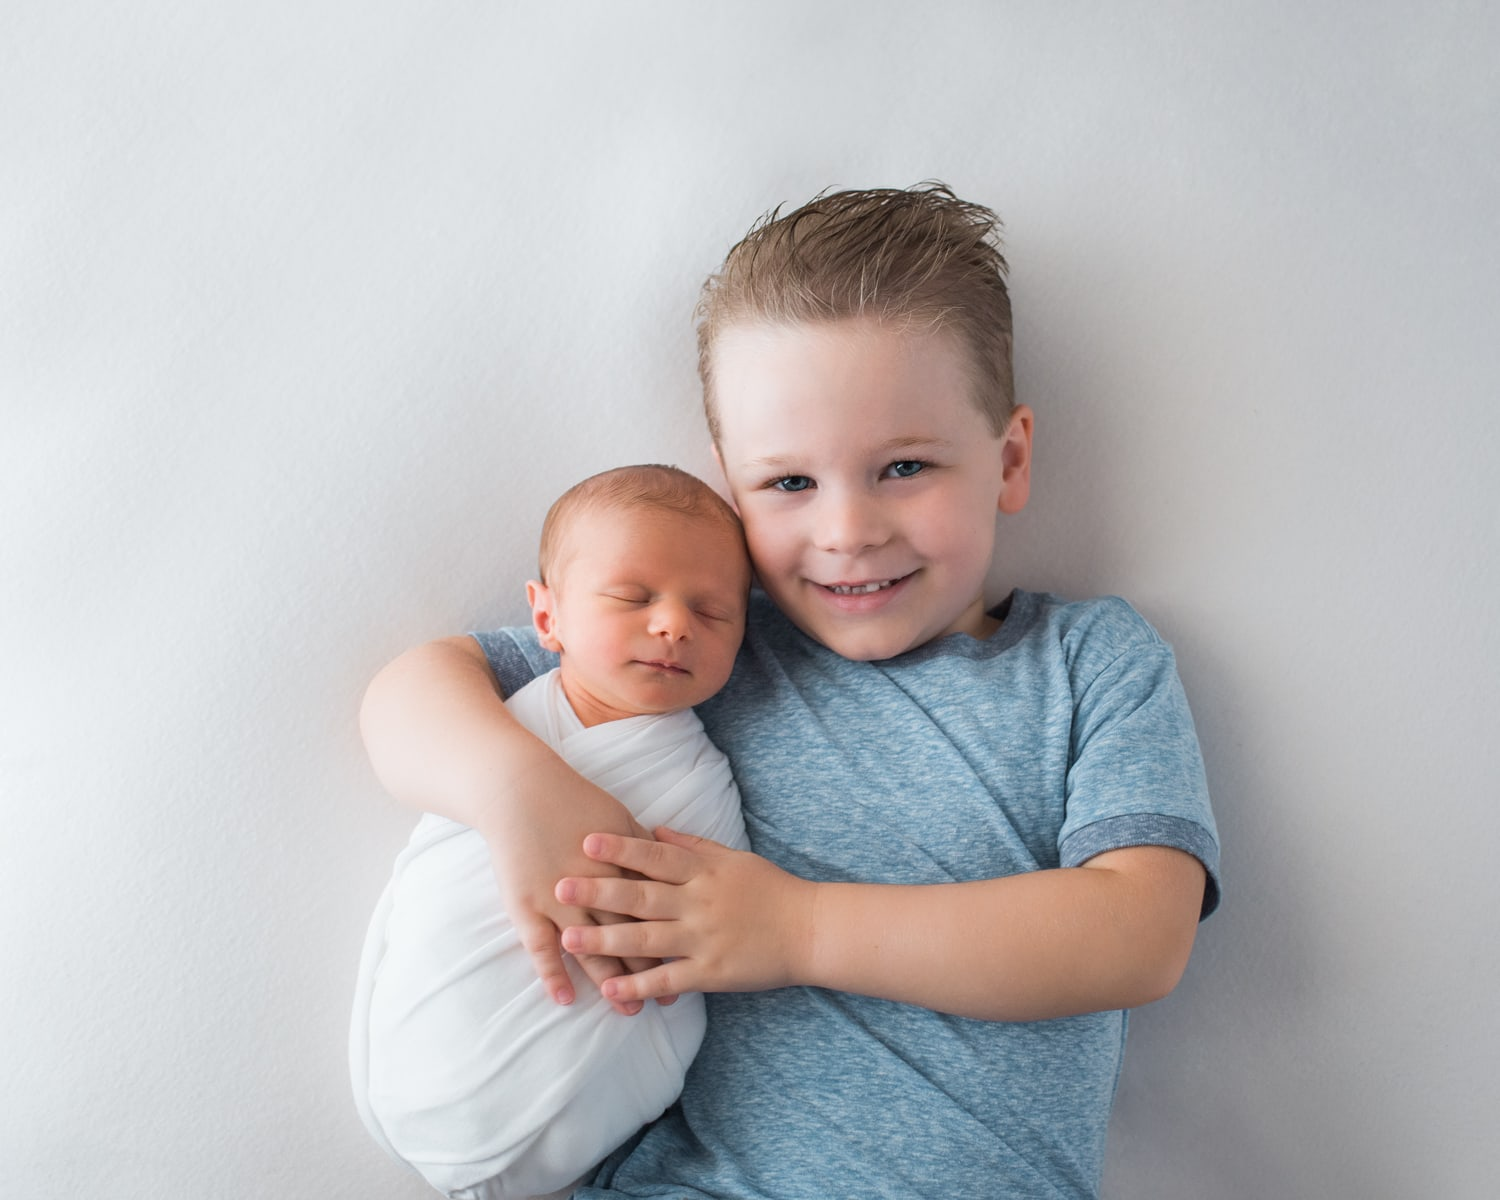 brother holding newborn